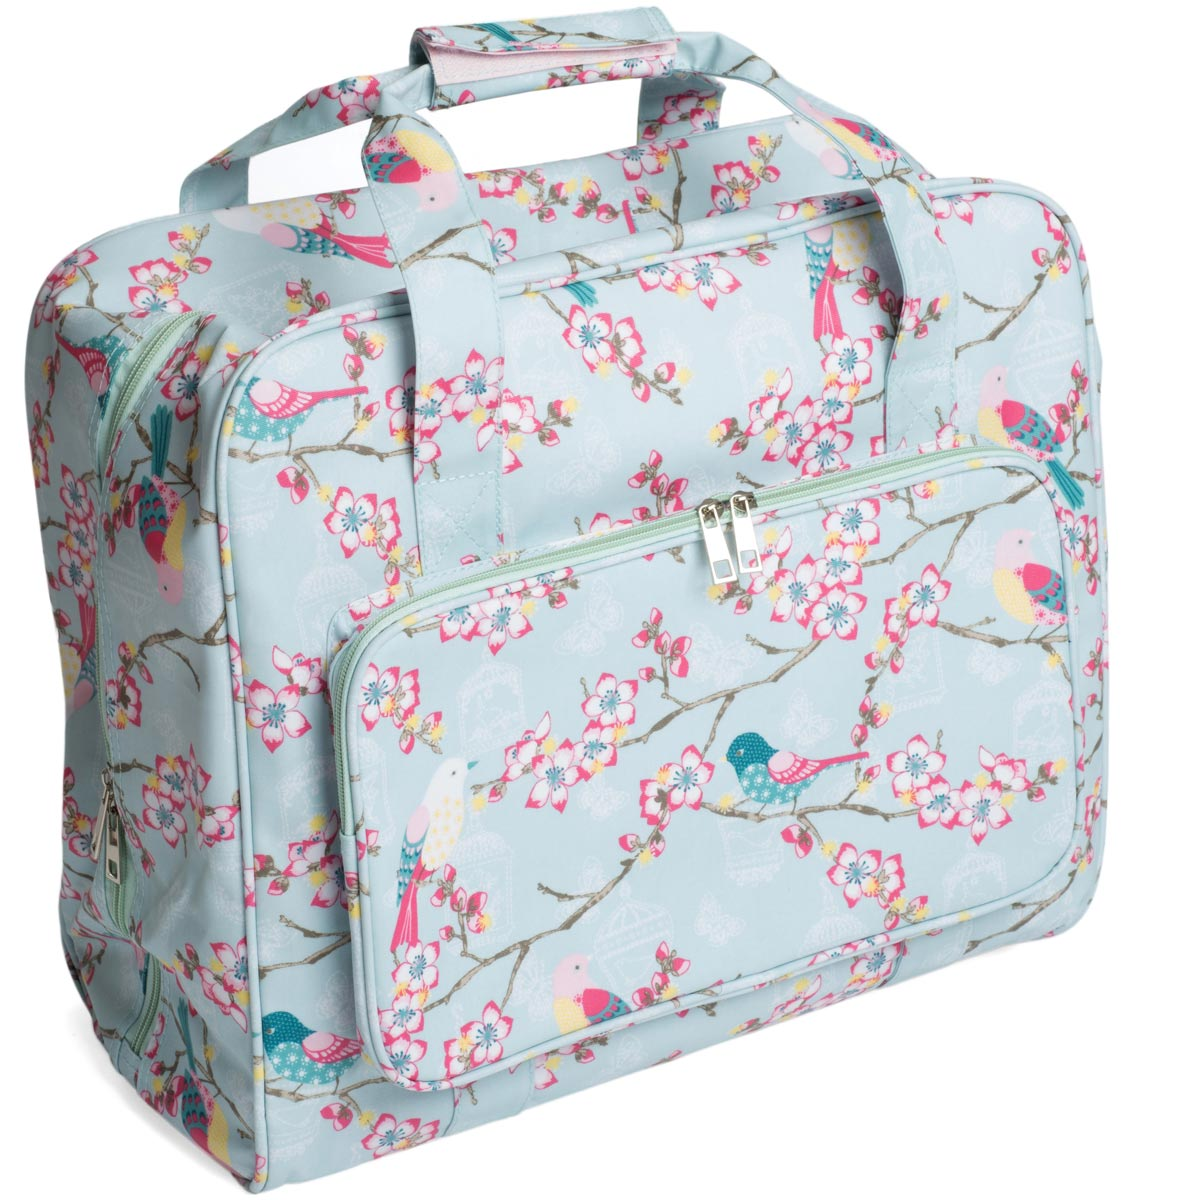 Sewing machine bag carry storage various